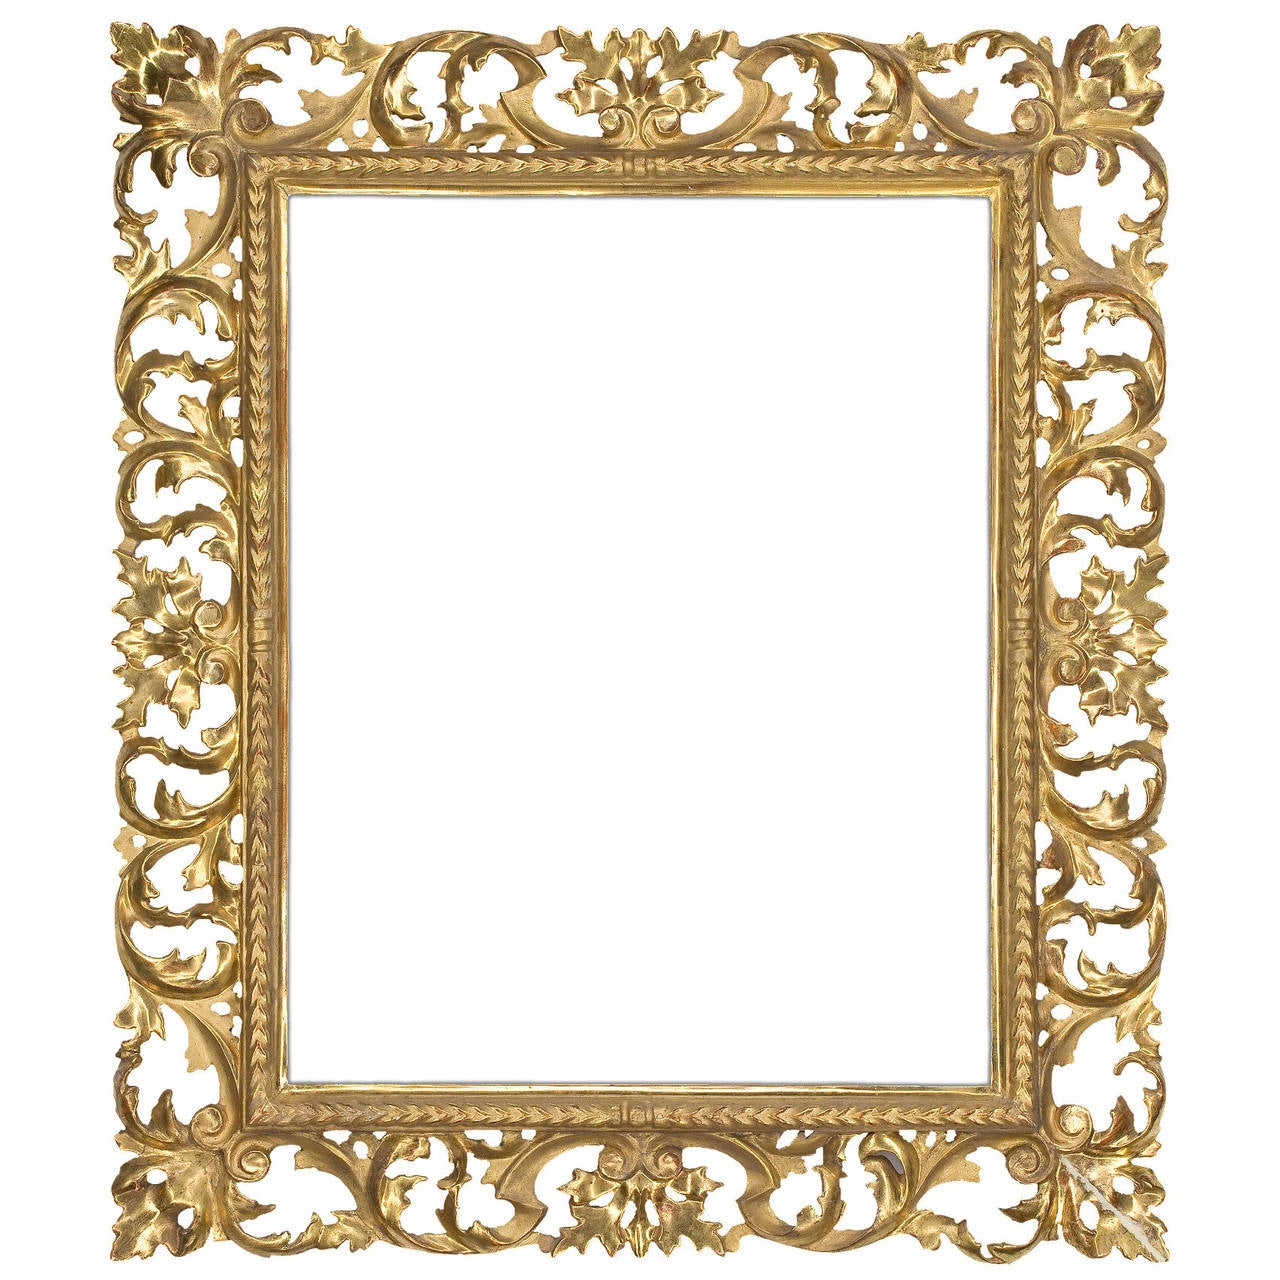 19th century italian carved frame for sale at 1stdibs 19th century italian carved frame for sale jeuxipadfo Image collections